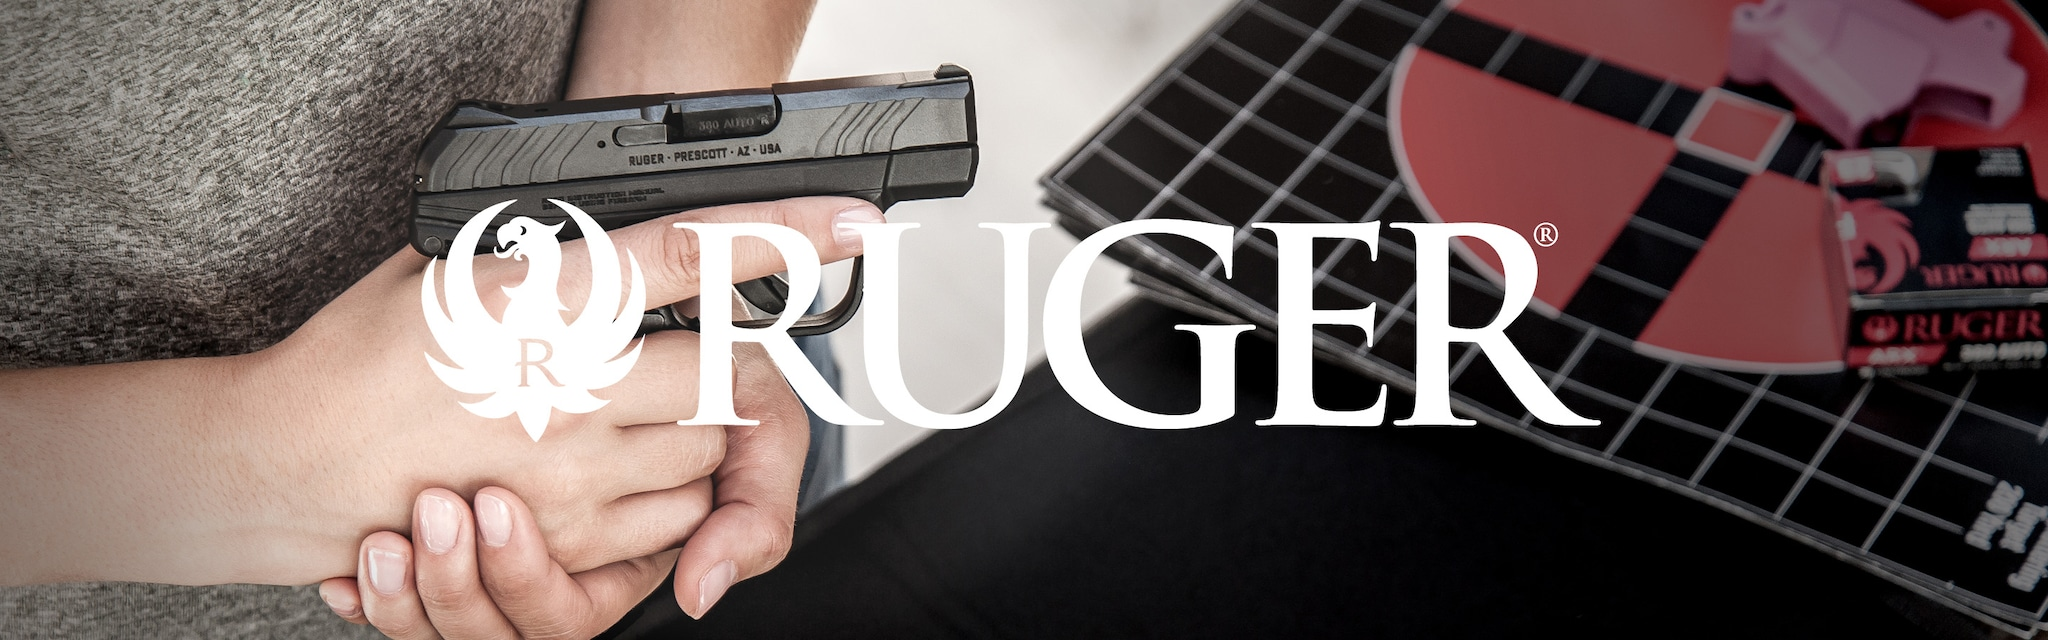 Ruger Brand Page